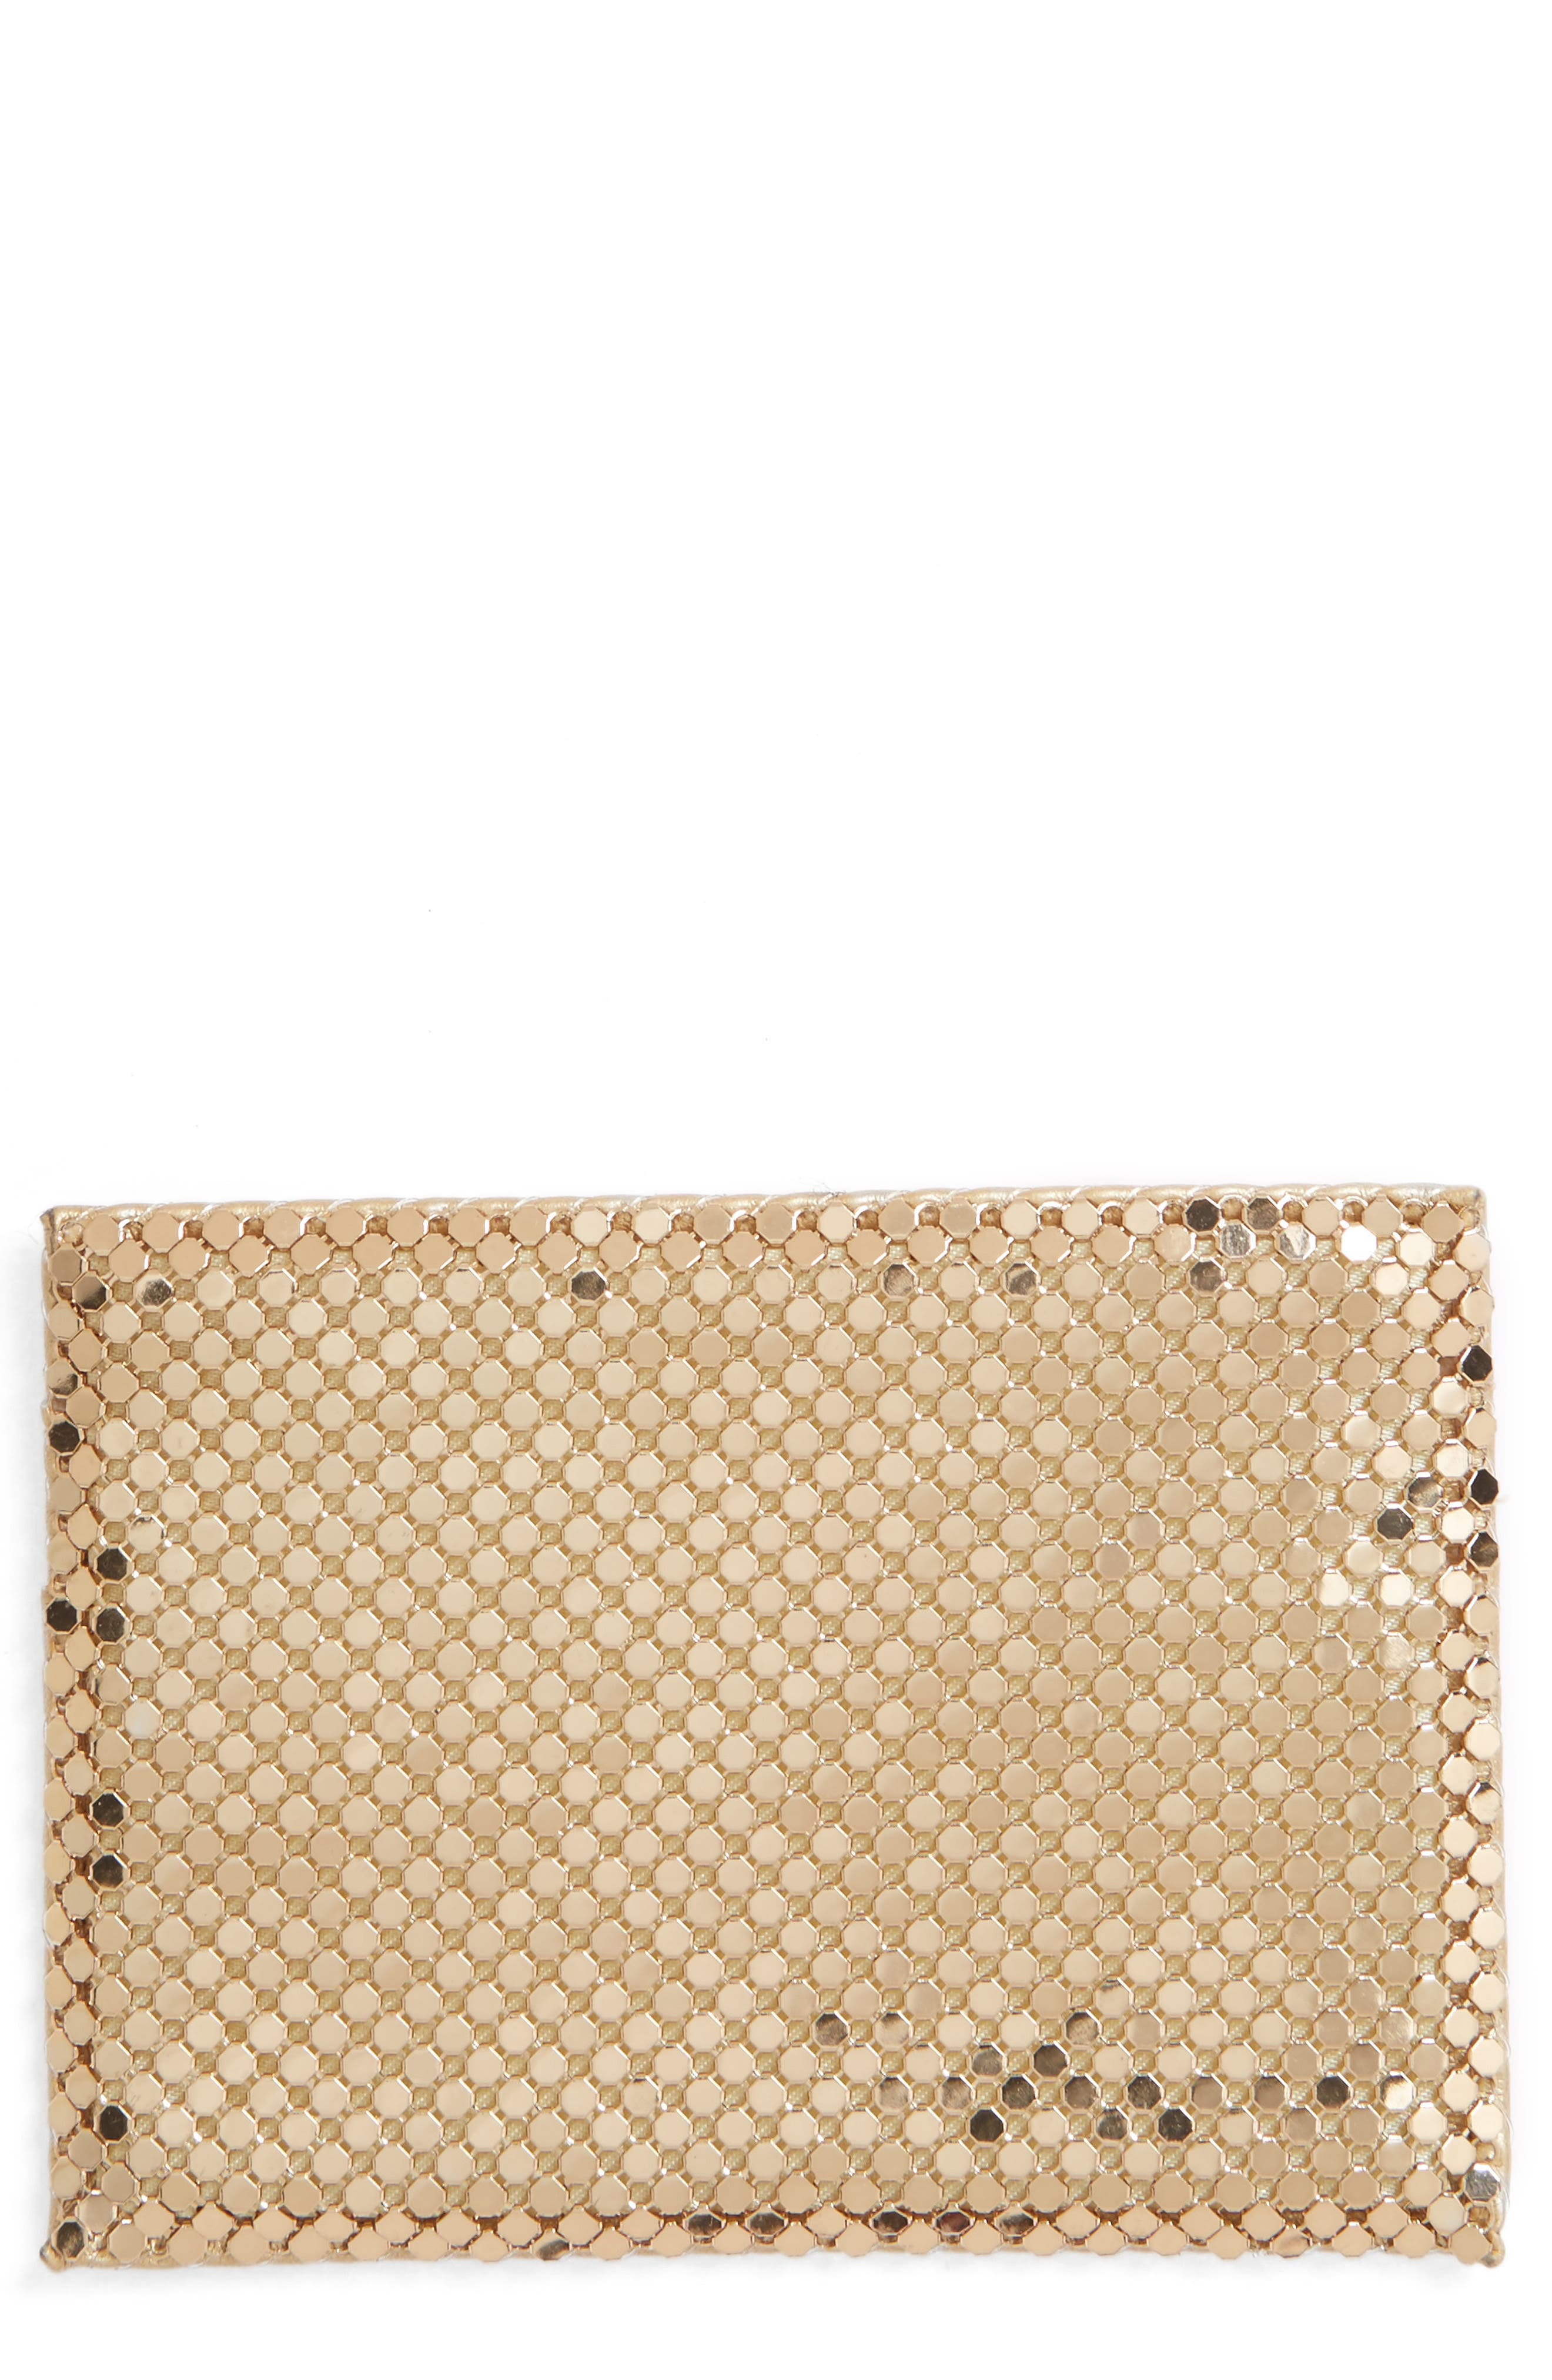 Whiting & Davis Faux Leather & Mesh Card Case